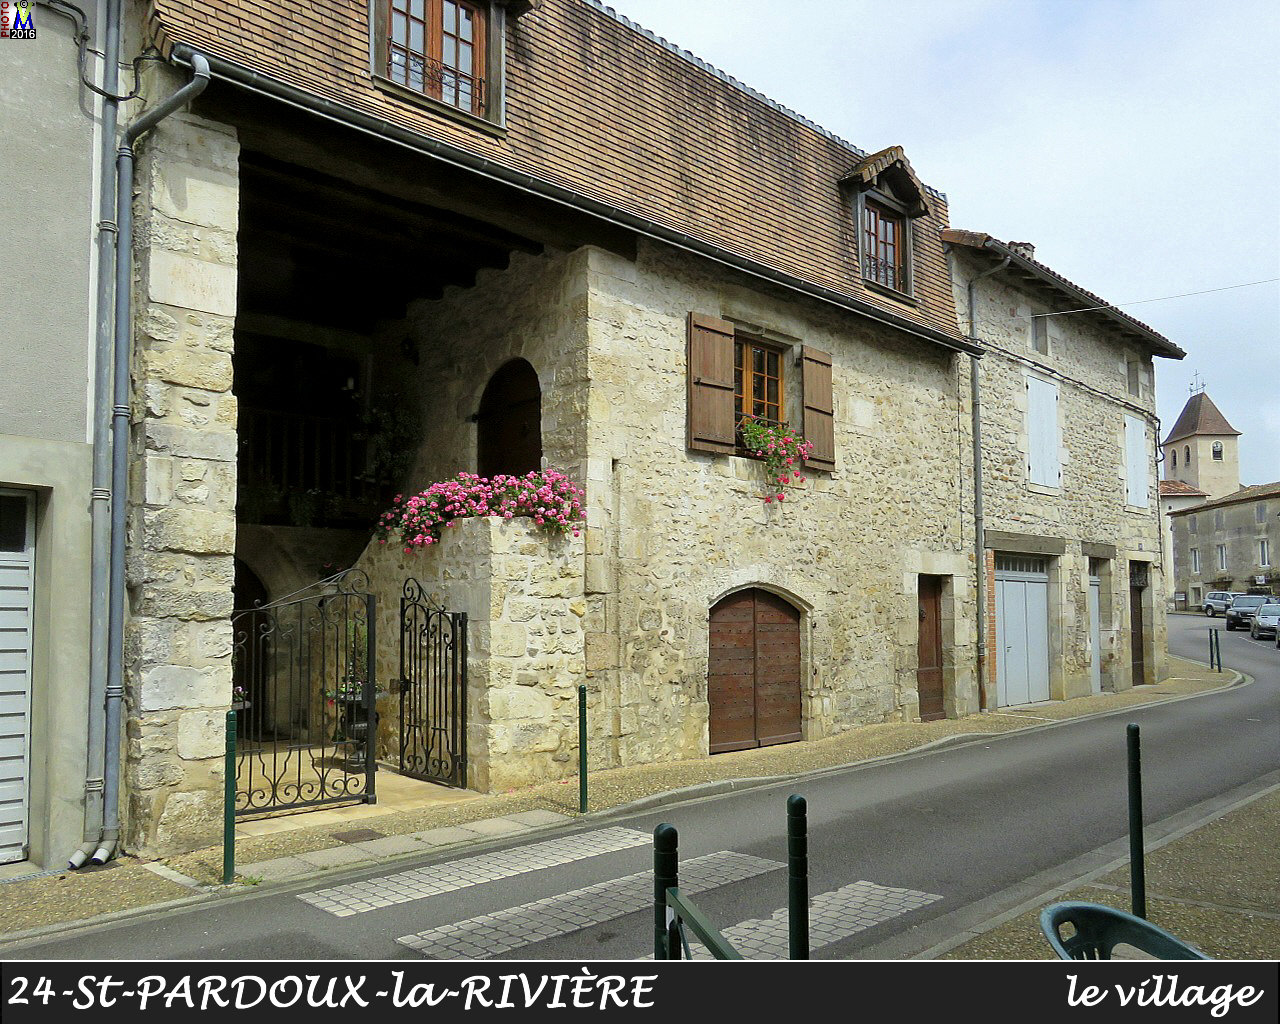 24StPARDOUX-LR_village_1004.jpg